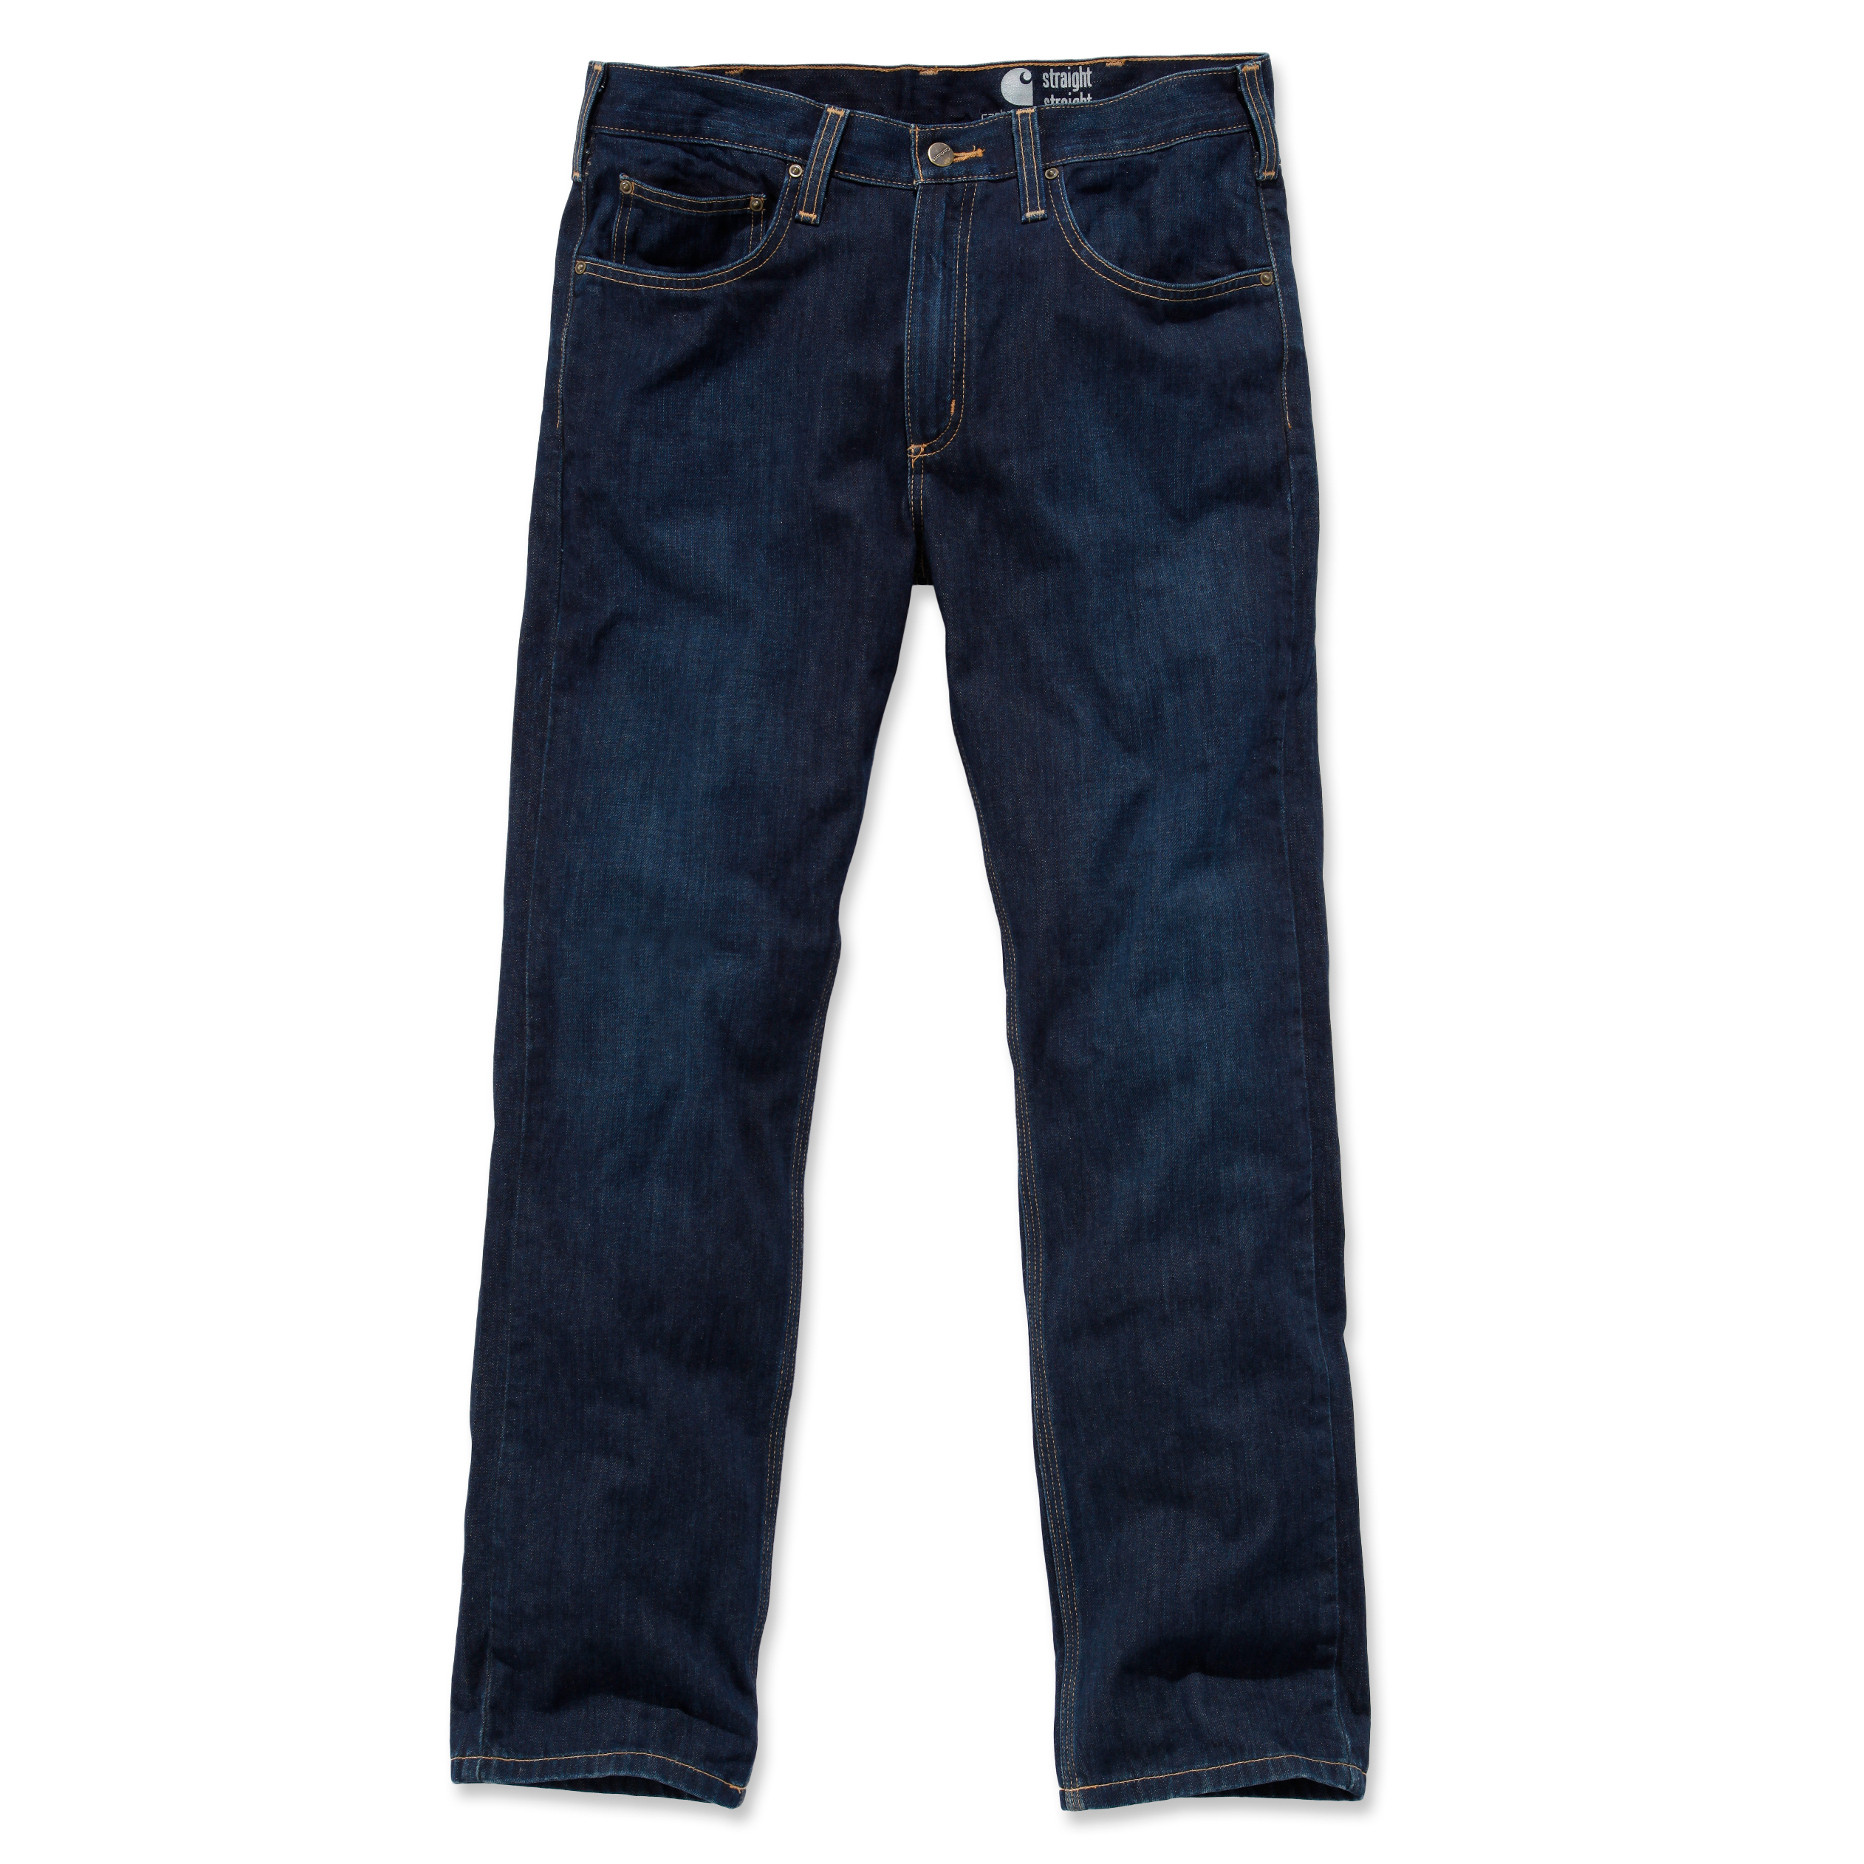 Джинсы Carhartt Straight Fit Jeans - 100067 (Weathered Indigo, W36/L32)